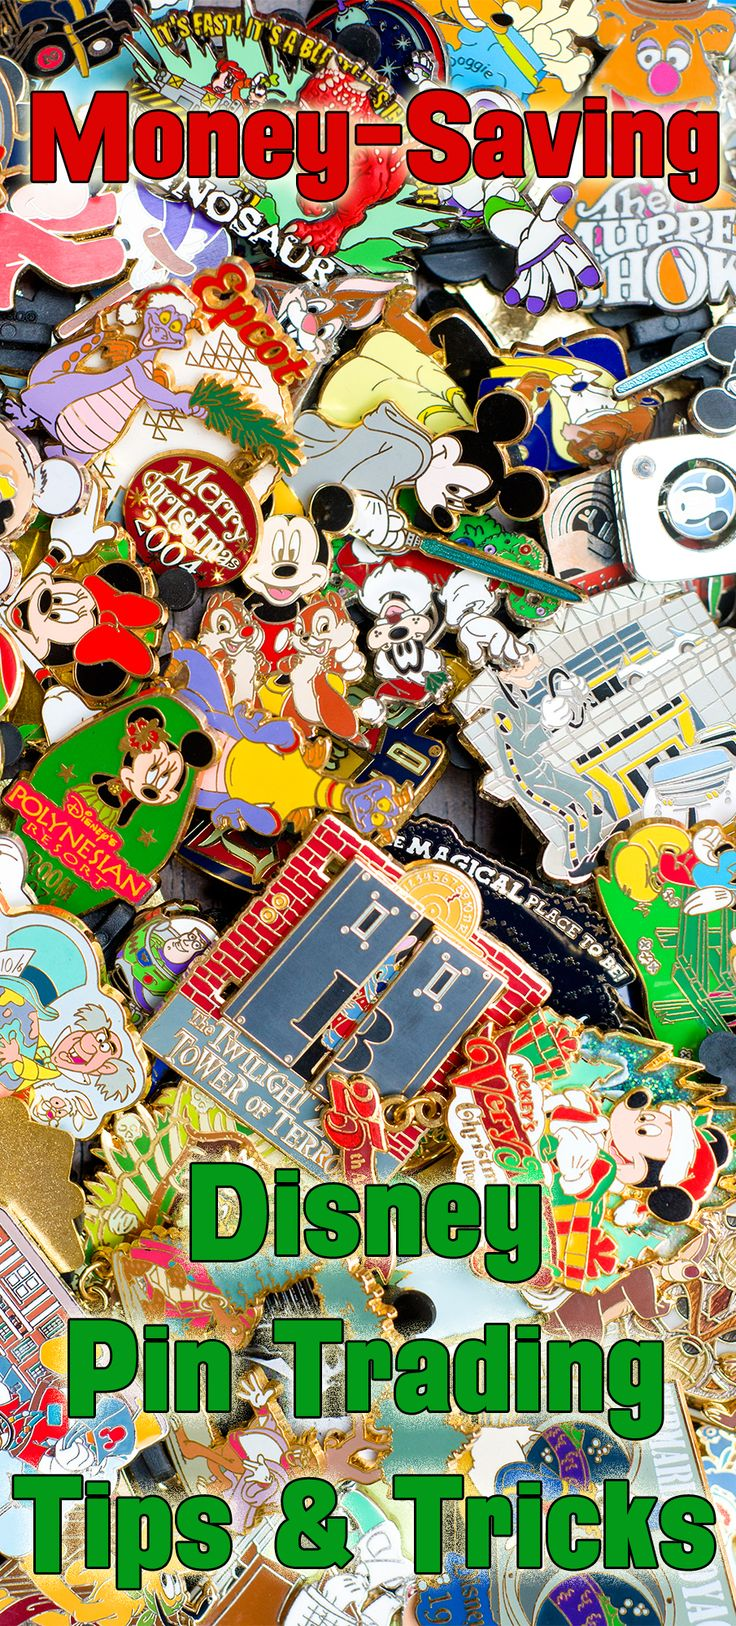 Love Disney Pin Trading? Then this is a MUST-READ post offering money-saving tips & tricks!